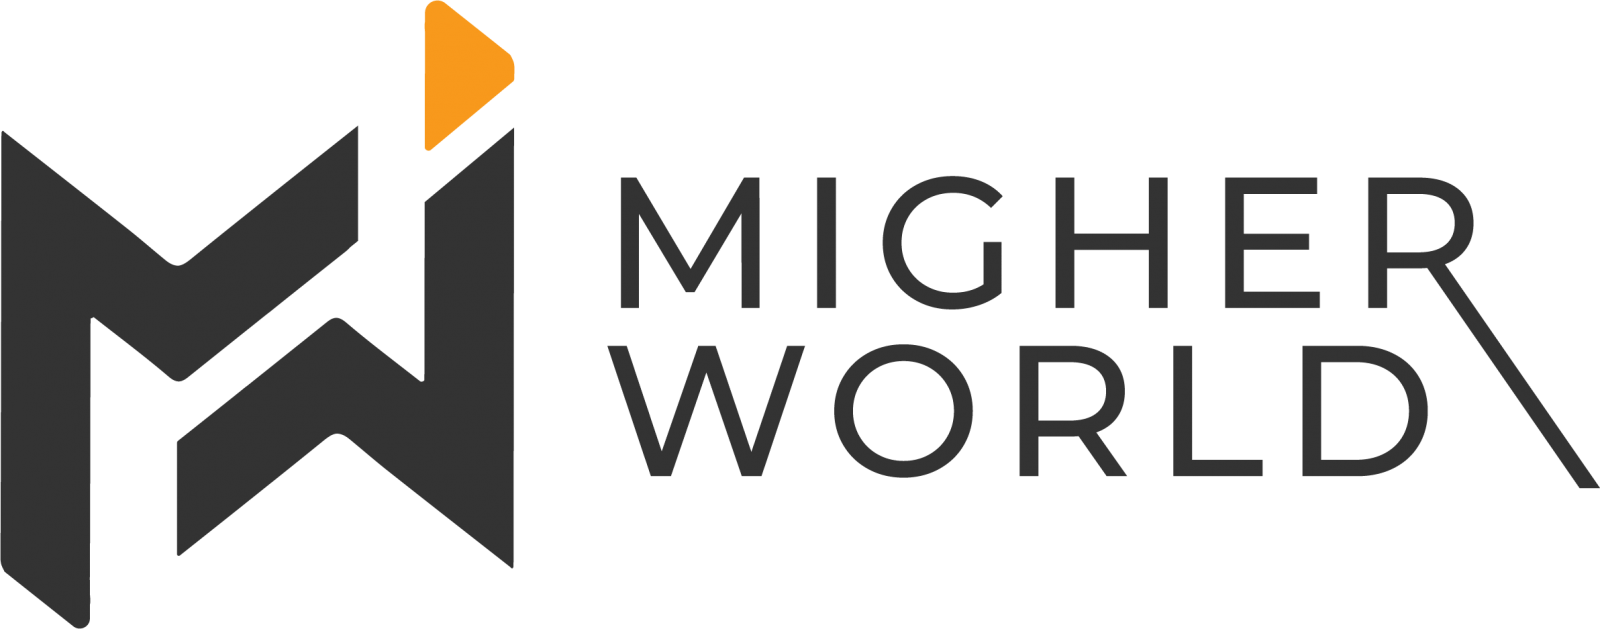 Migher World Logo Main Web Design, Digital Marketing, E-Commerce, Branding, Creative Design, Website Maintenance., Training Services, Migher World